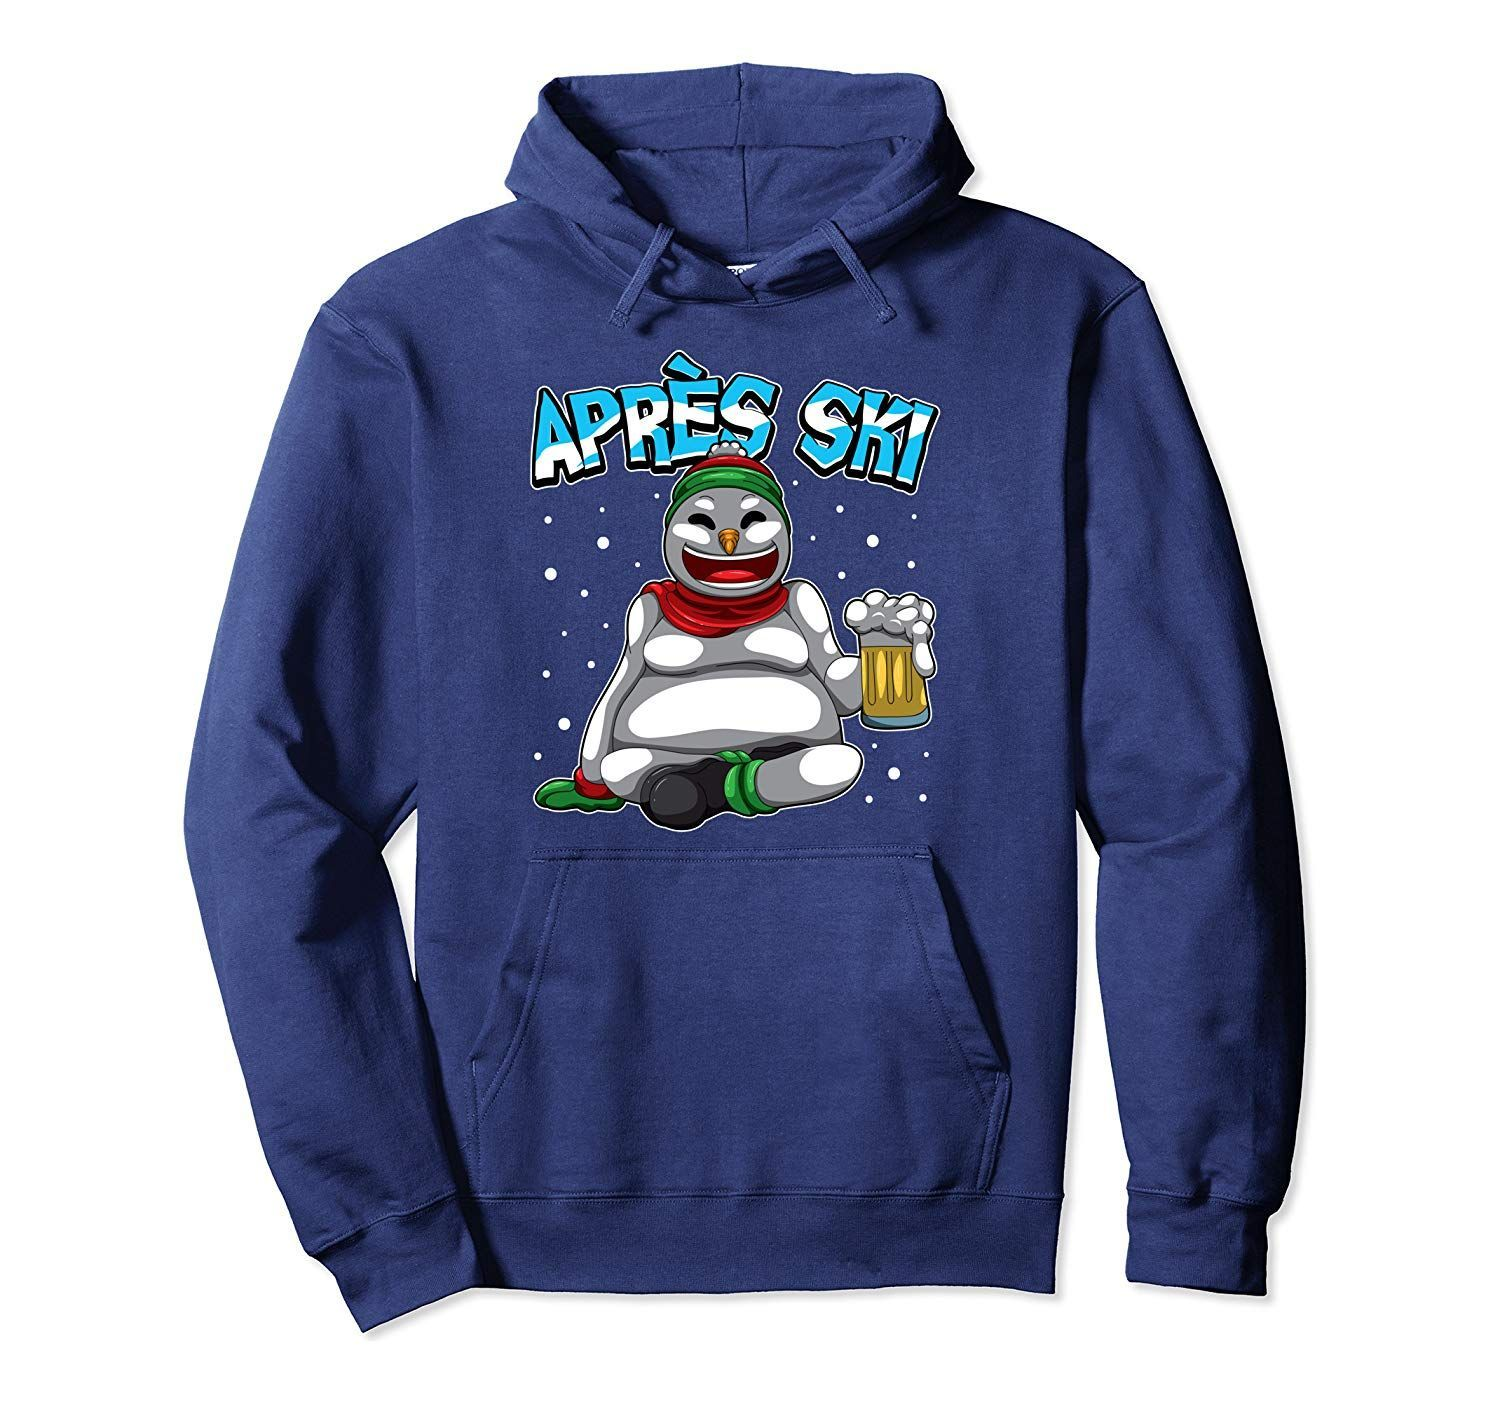 Apres Ski Snowman – Ski Lodge Outfit – Snowboard and Skiing Pullover Hoodie